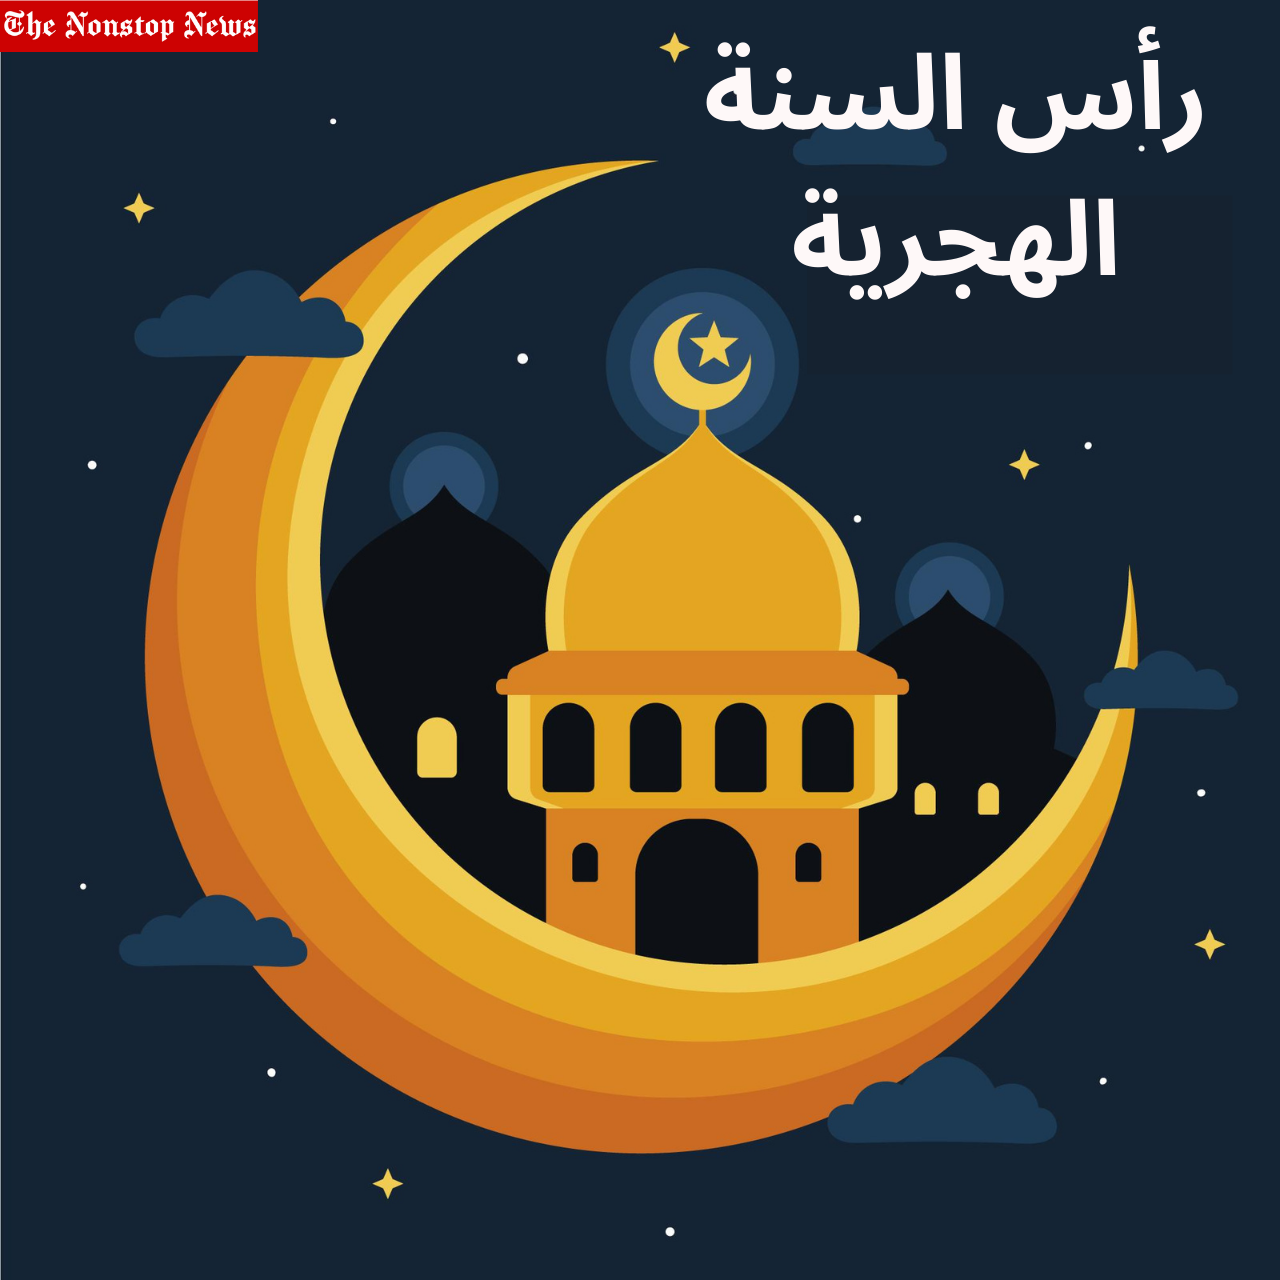 Islamic New Year 2021 Arabic Quotes, and Wishes: HD Images, Messages, Shayari, Status, and Greetings to send to your dear ones